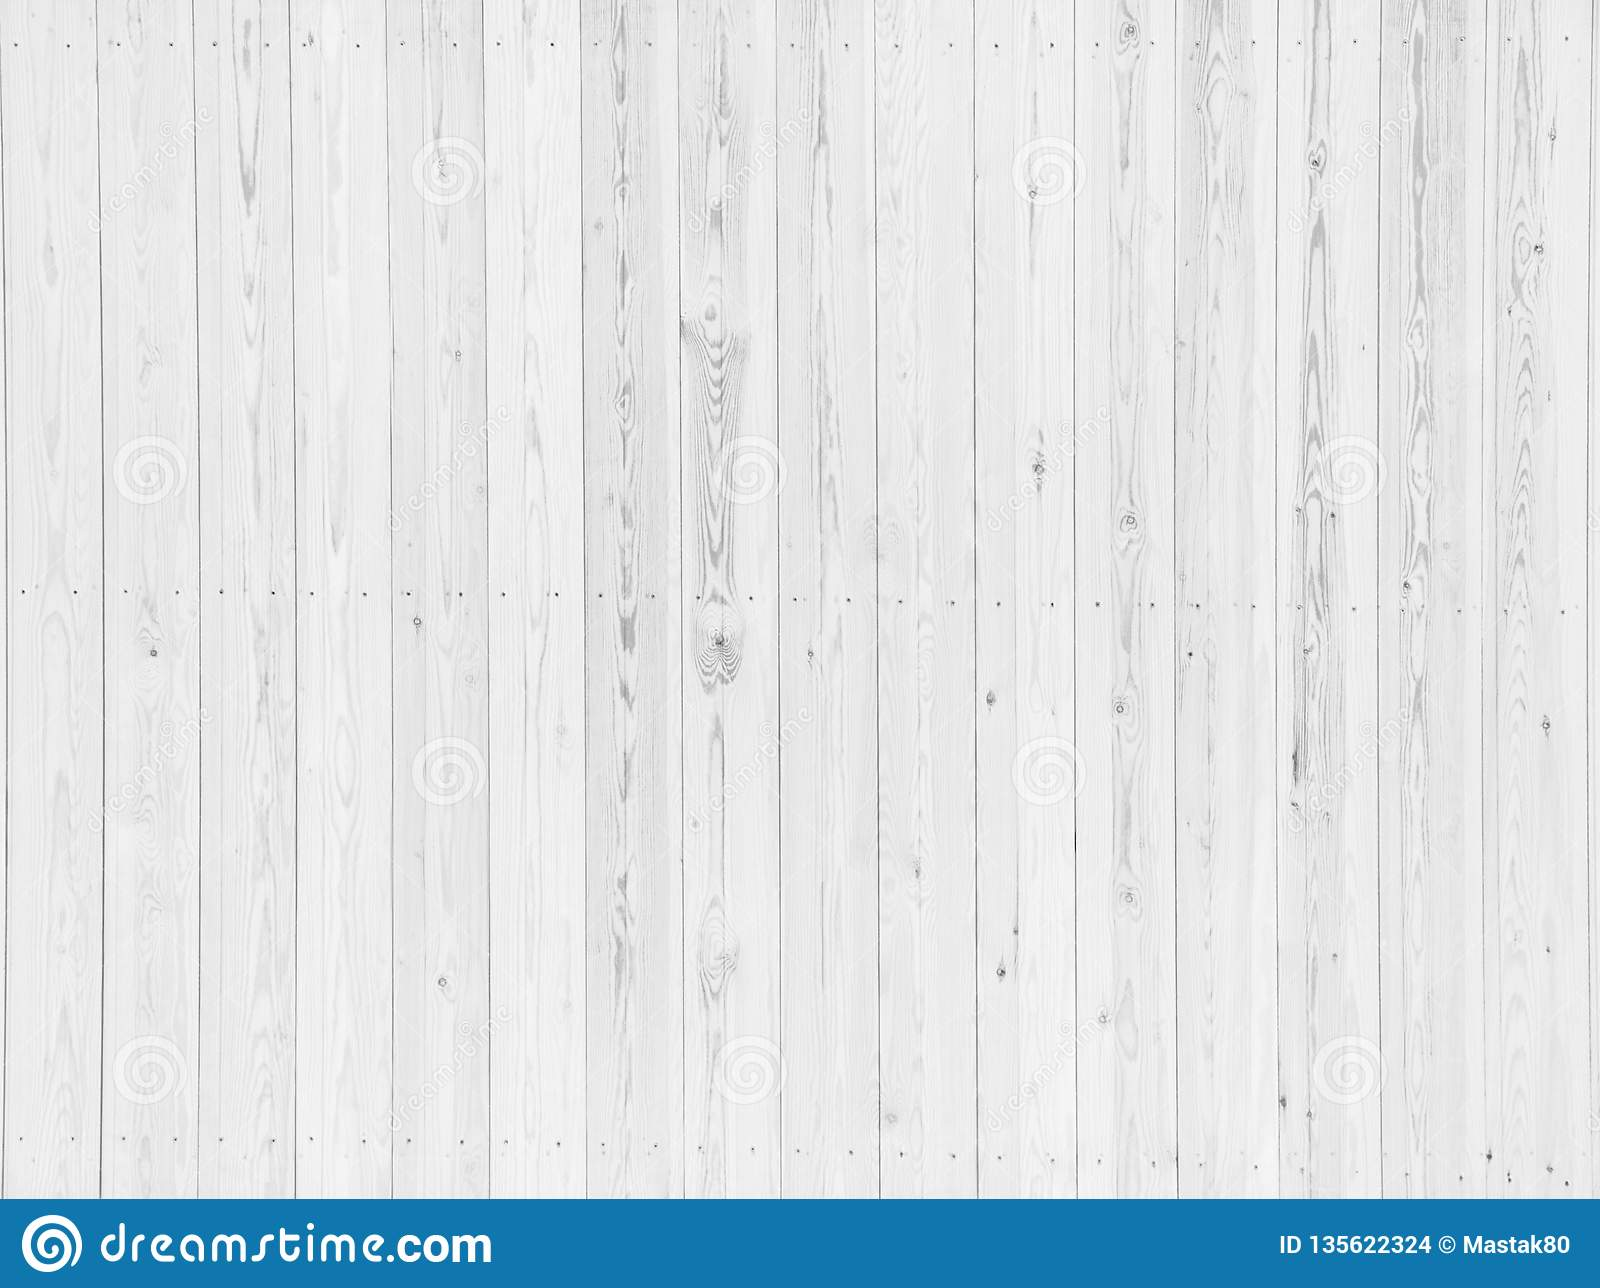 White Board with aged surface texture or background